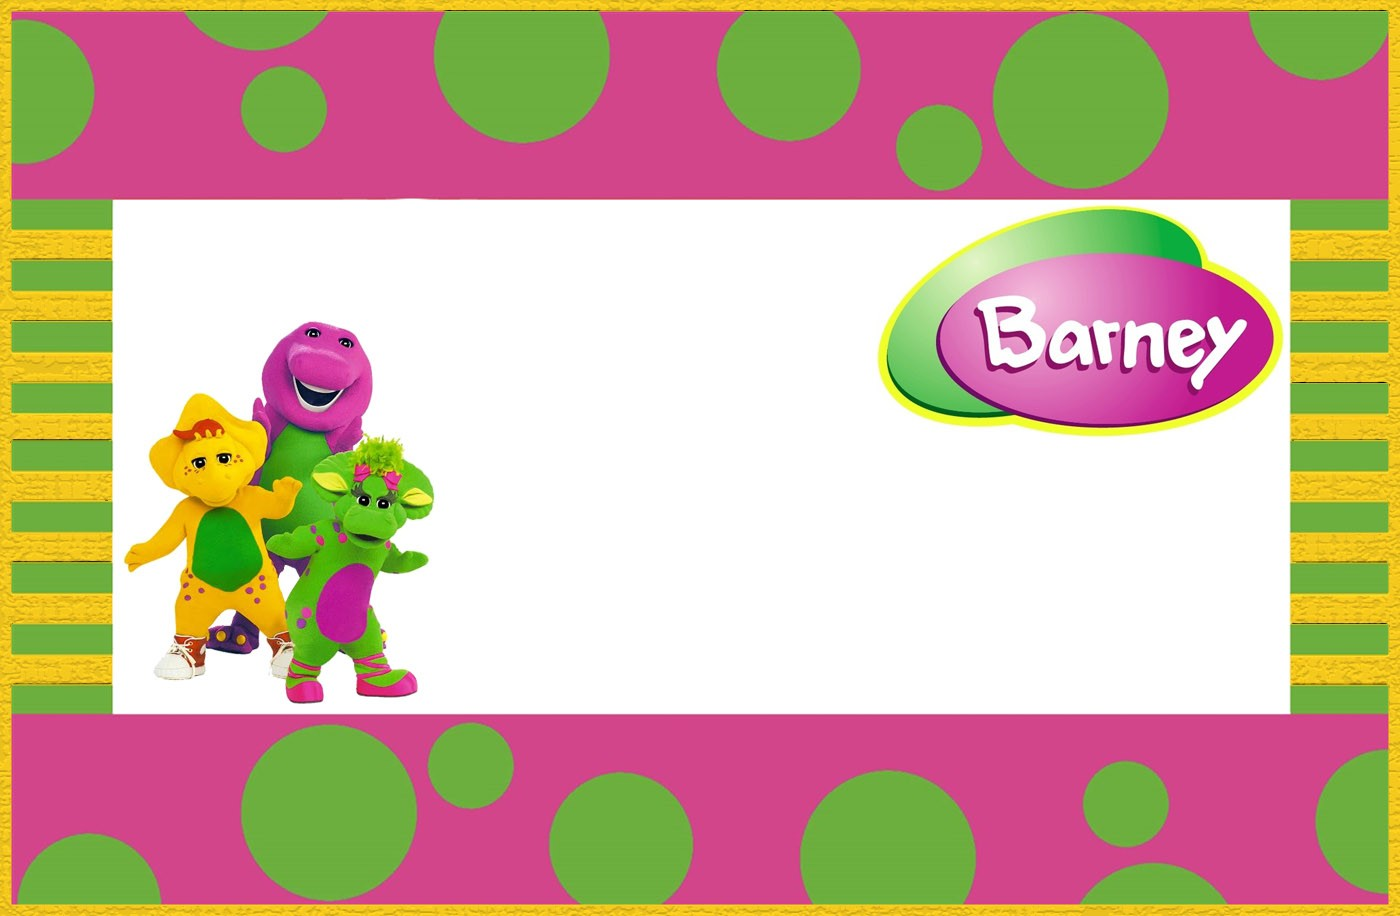 Free printable barney the dinosaur invitation template free printable barney the dinosaur invitation template monicamarmolfo Images